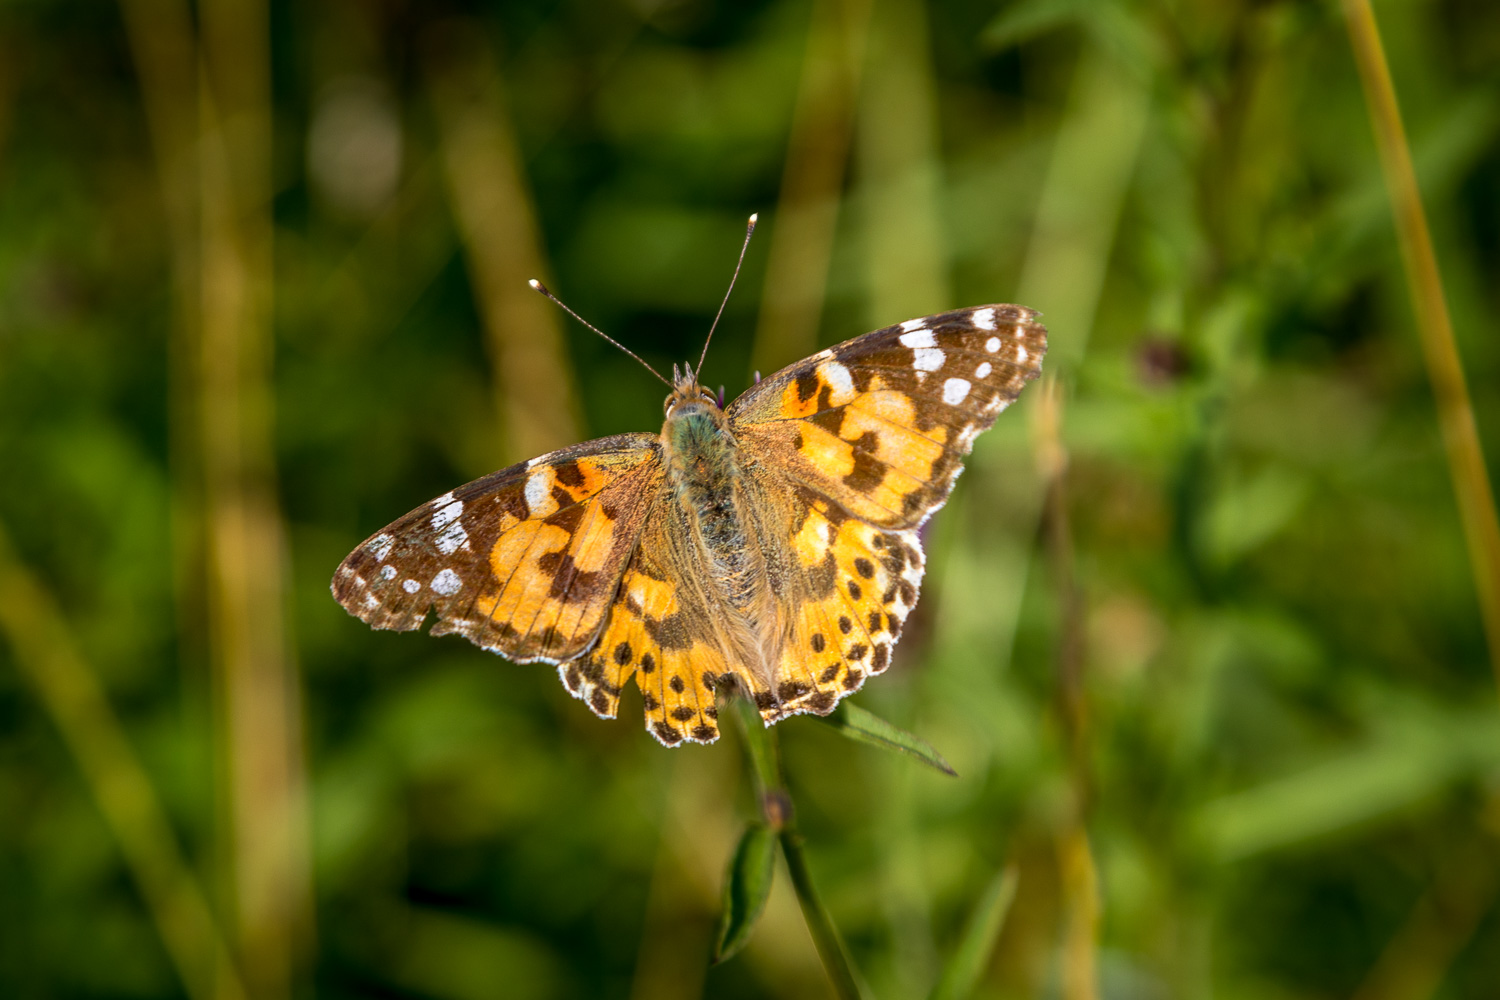 Chalkland Way, Painted Lady butterfly